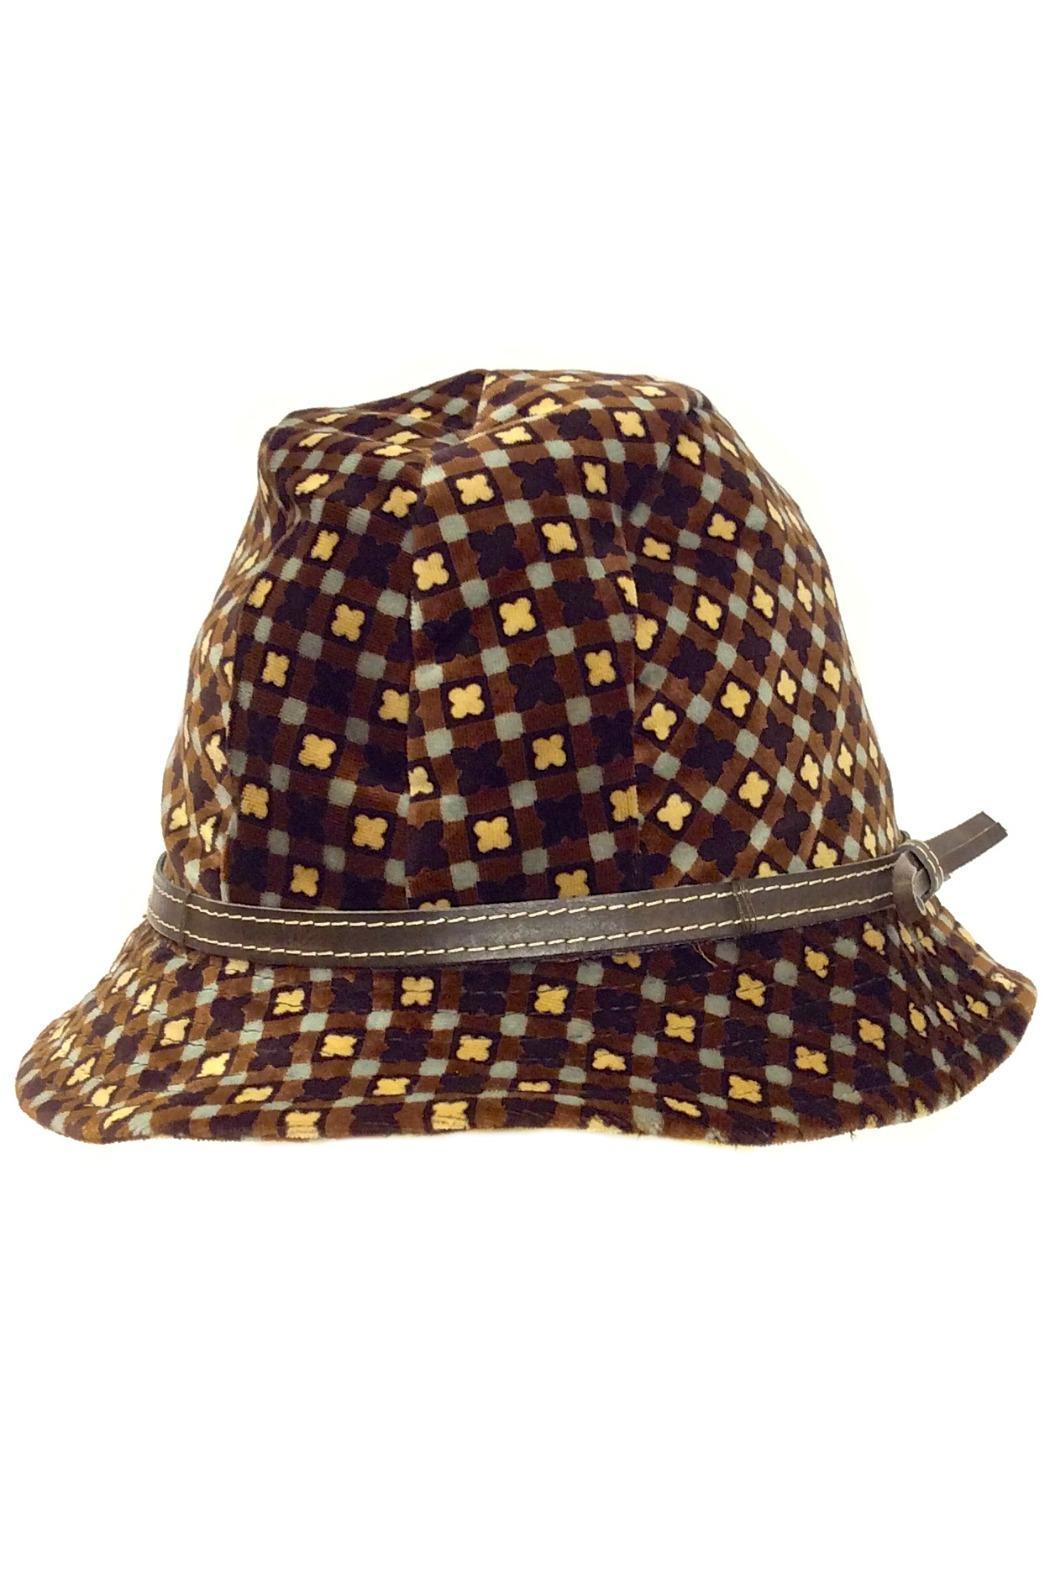 grevi printed velvet hat from portland by moods of